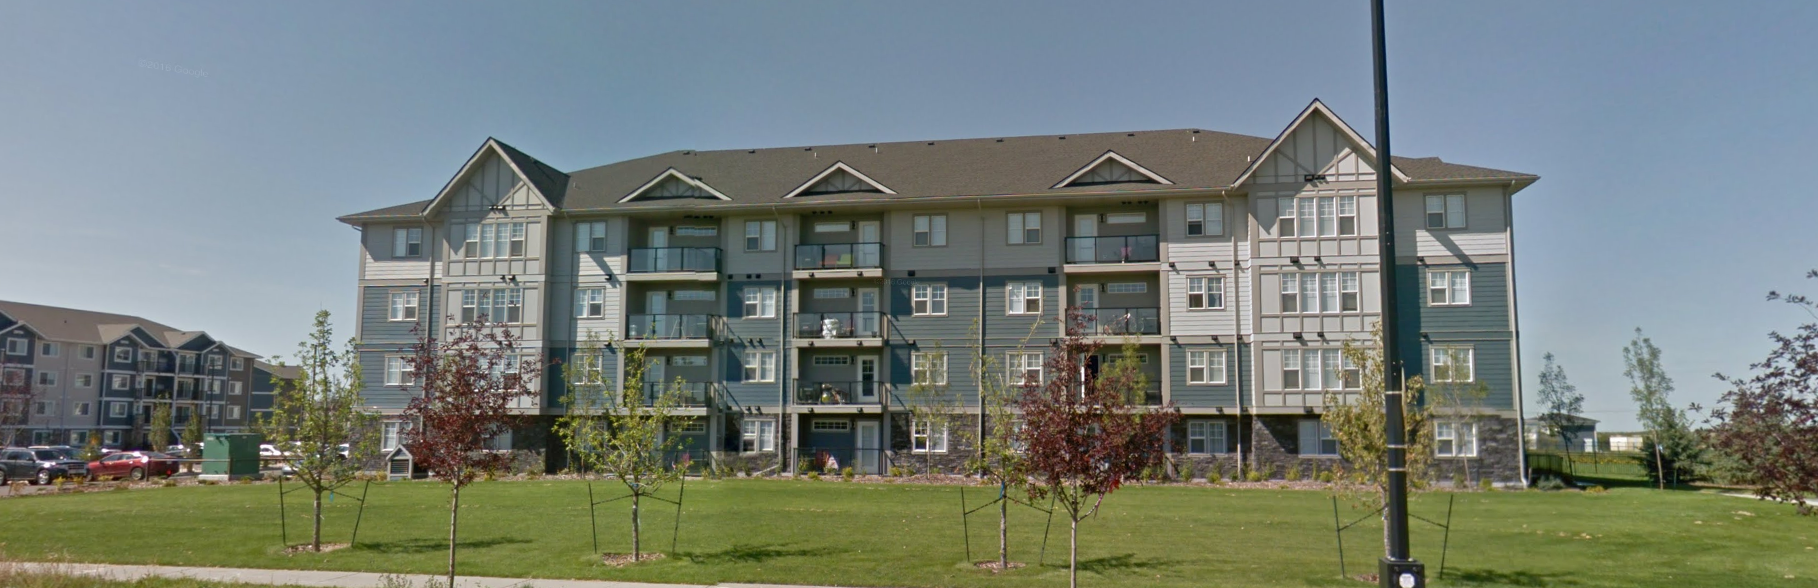 Chappelle Gardens  Located at 2910 141 Street, Edmonton AB.  4 Storeys condo building.